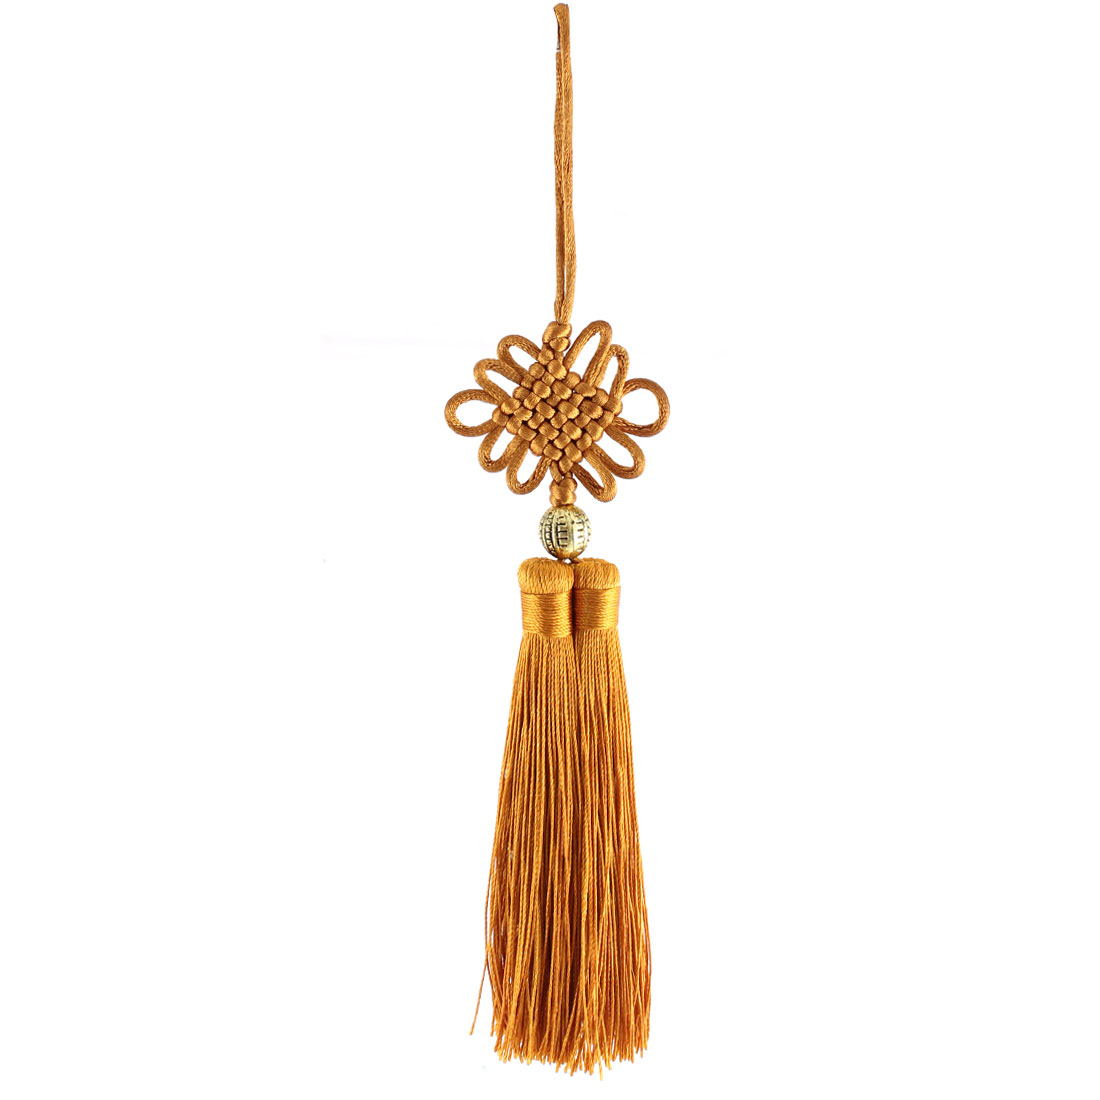 Brown Chinese Knot Pendant Hanging Decor DIY Tassel Handicraft